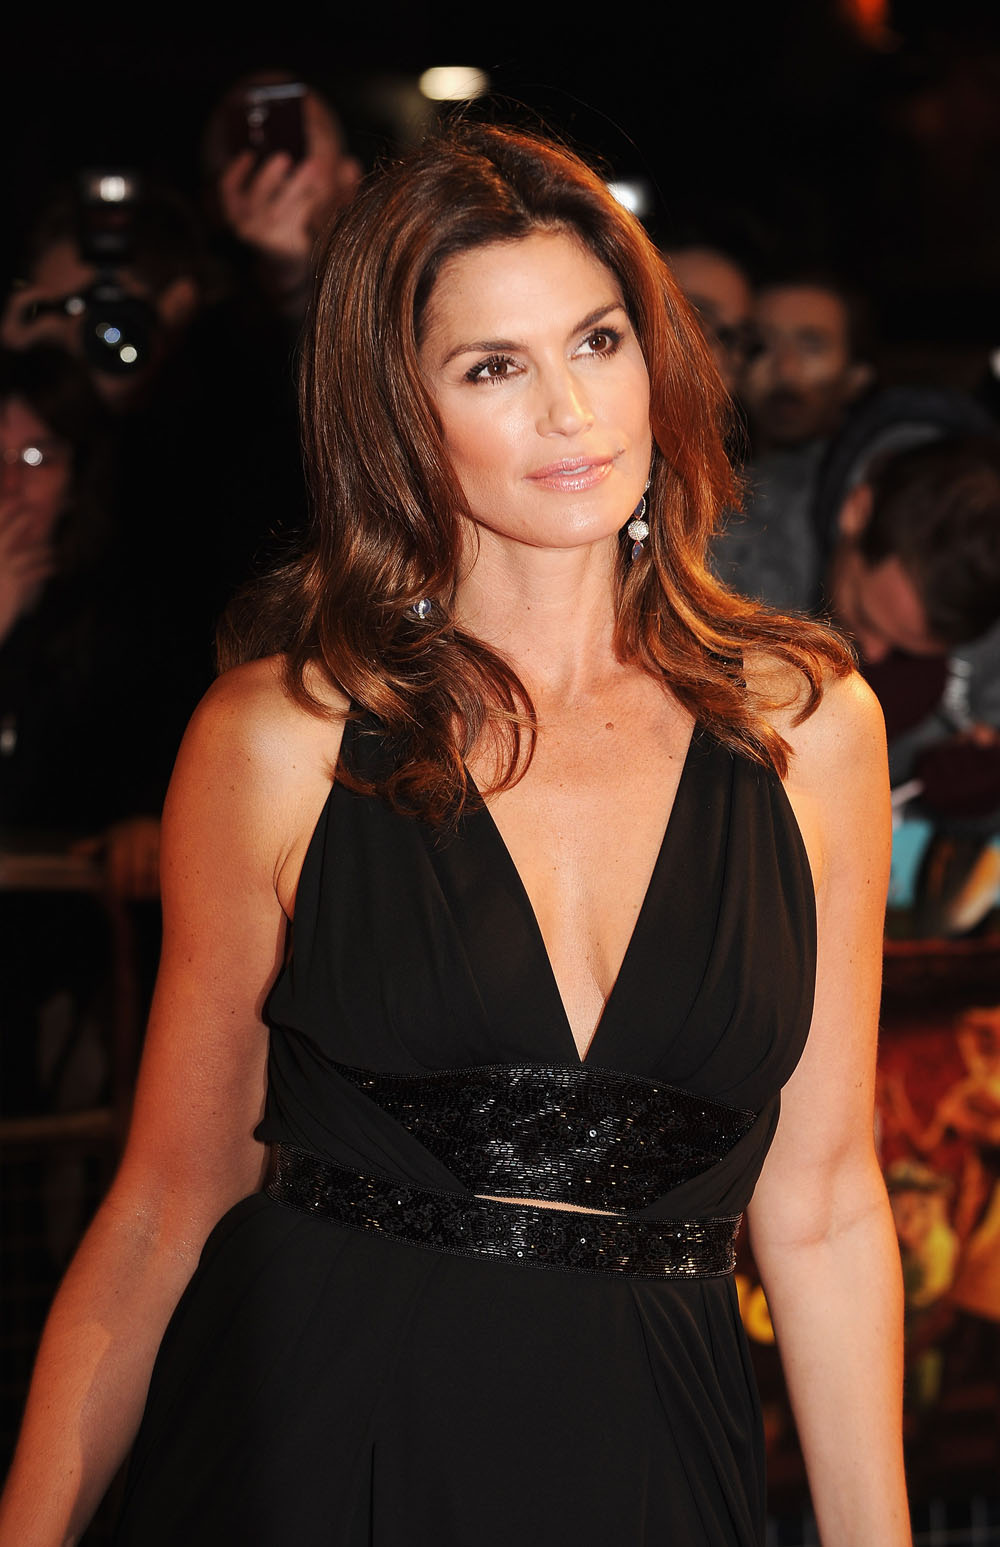 Cindy Crawford - Wallpaper Actress